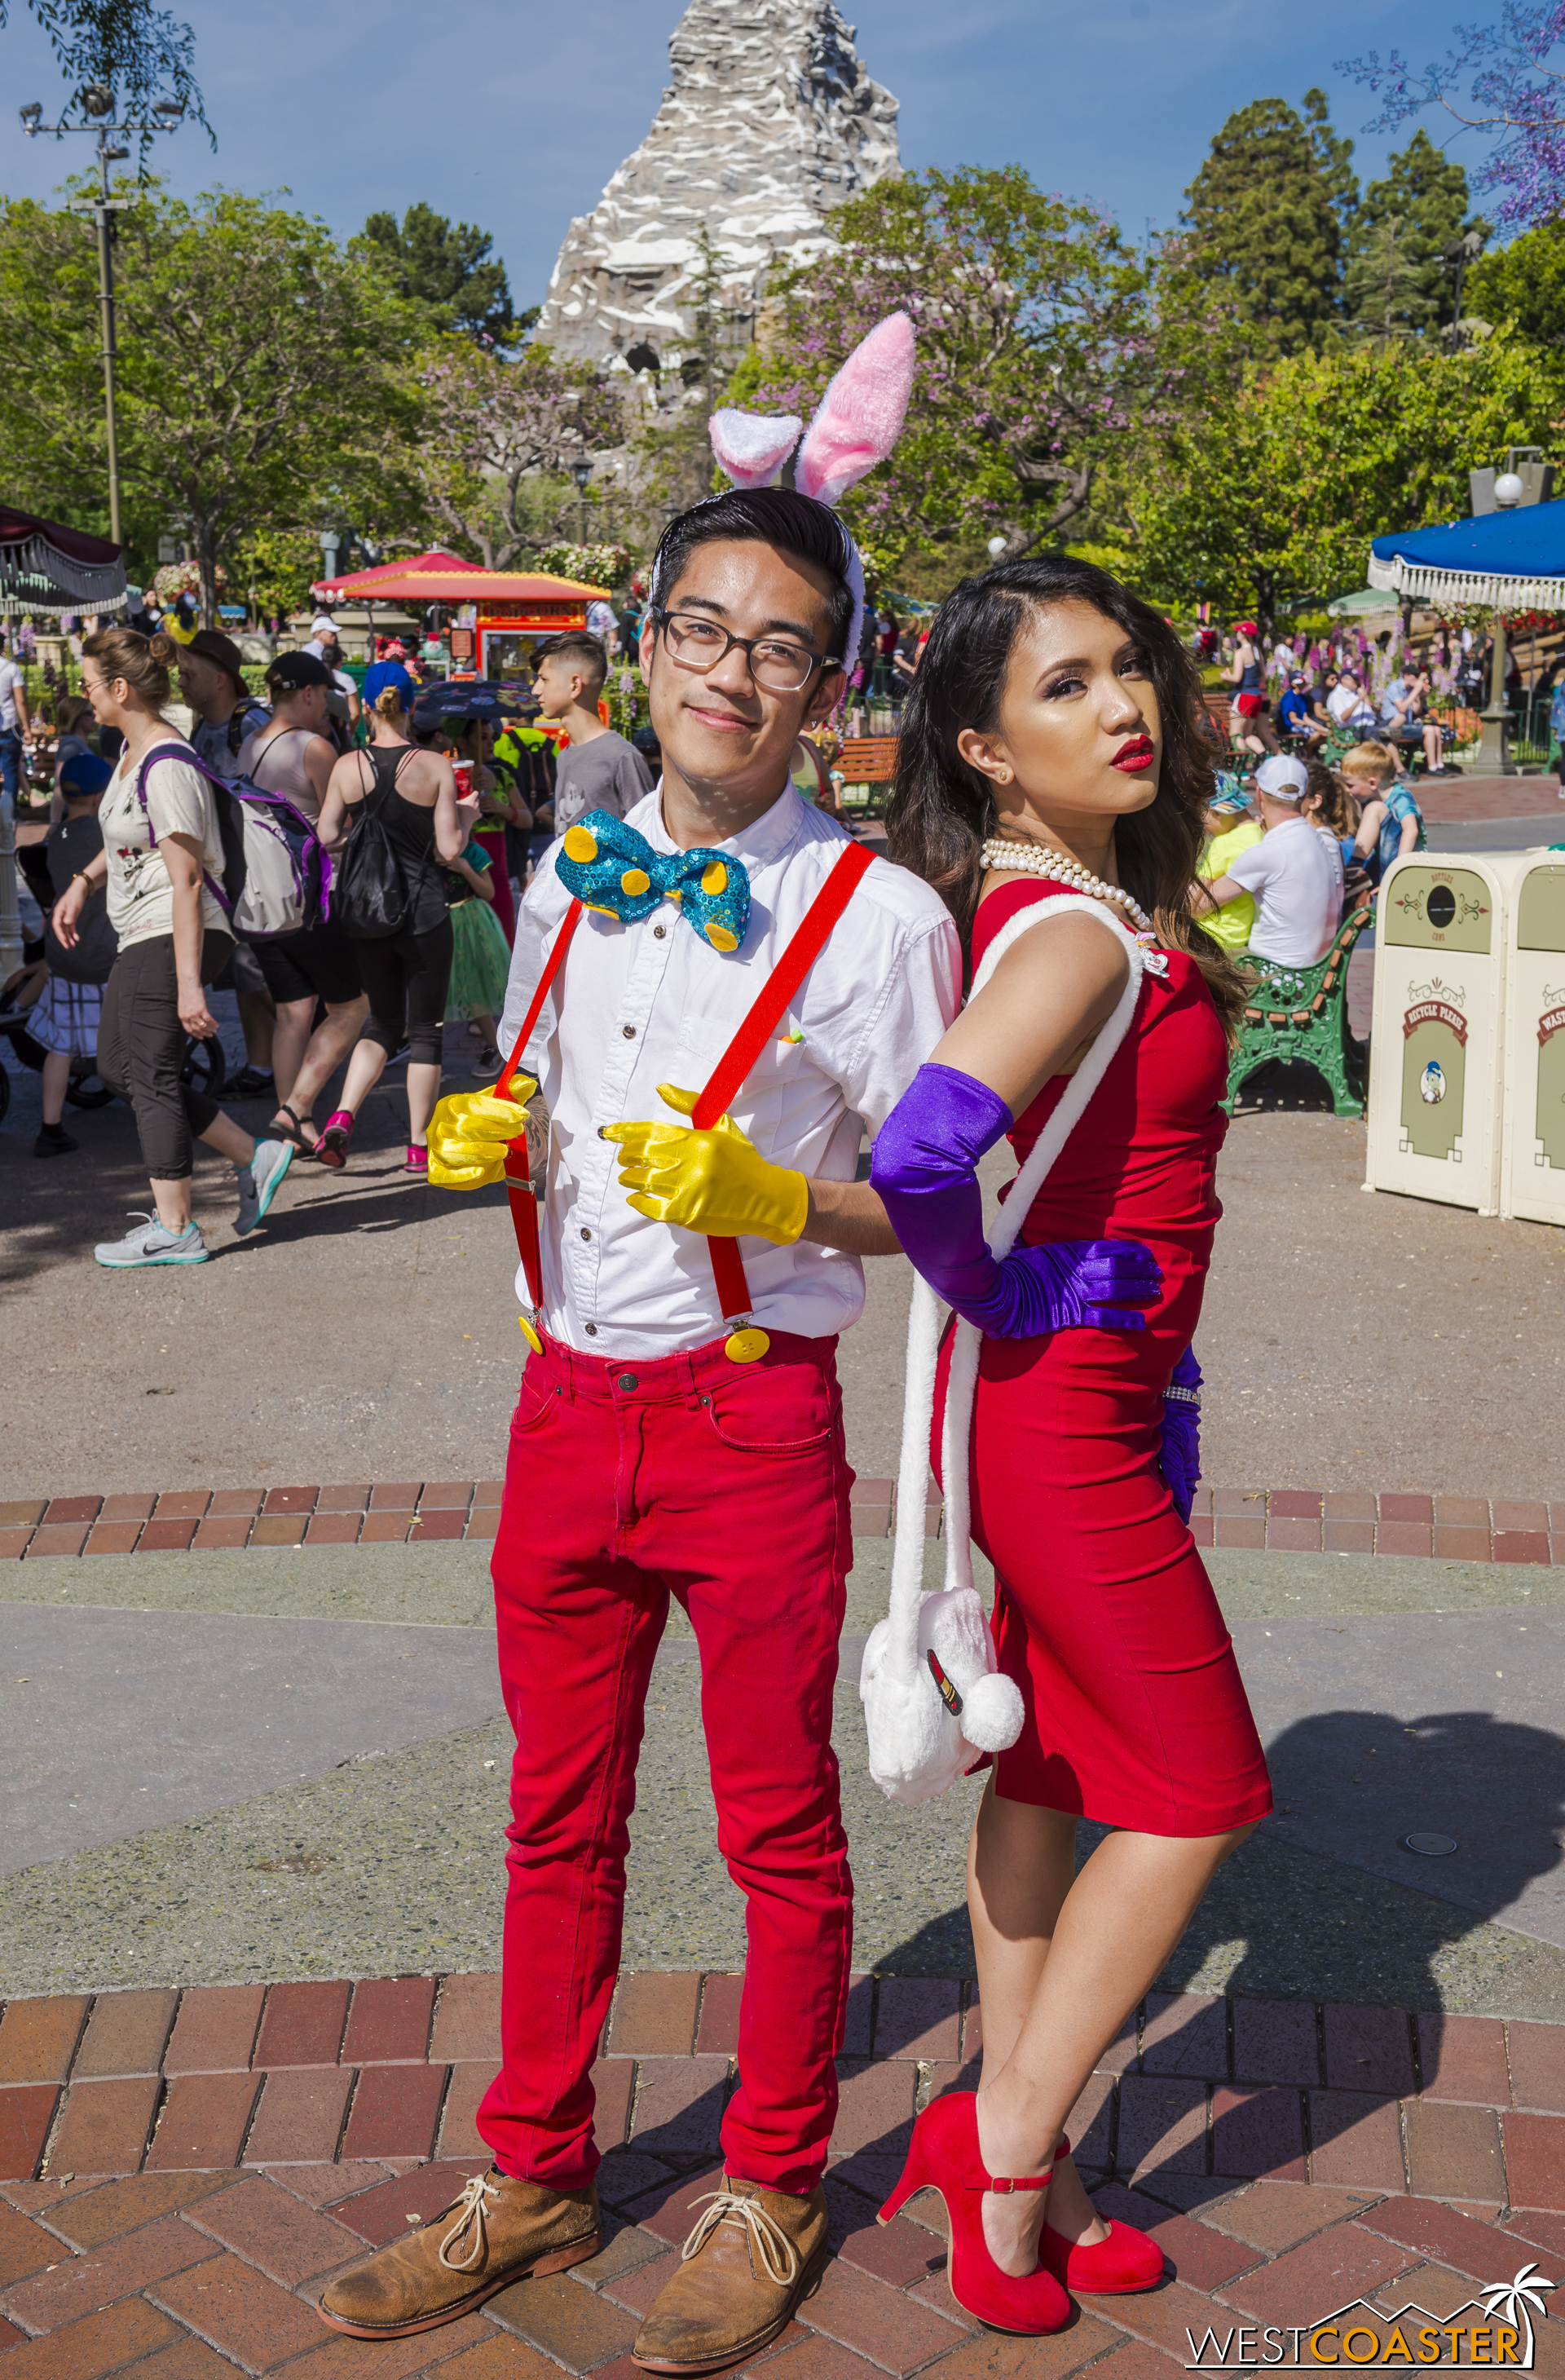 Moving onto the Disneyland side, this Roger and Jessica Rabbit were traffic stoppers.